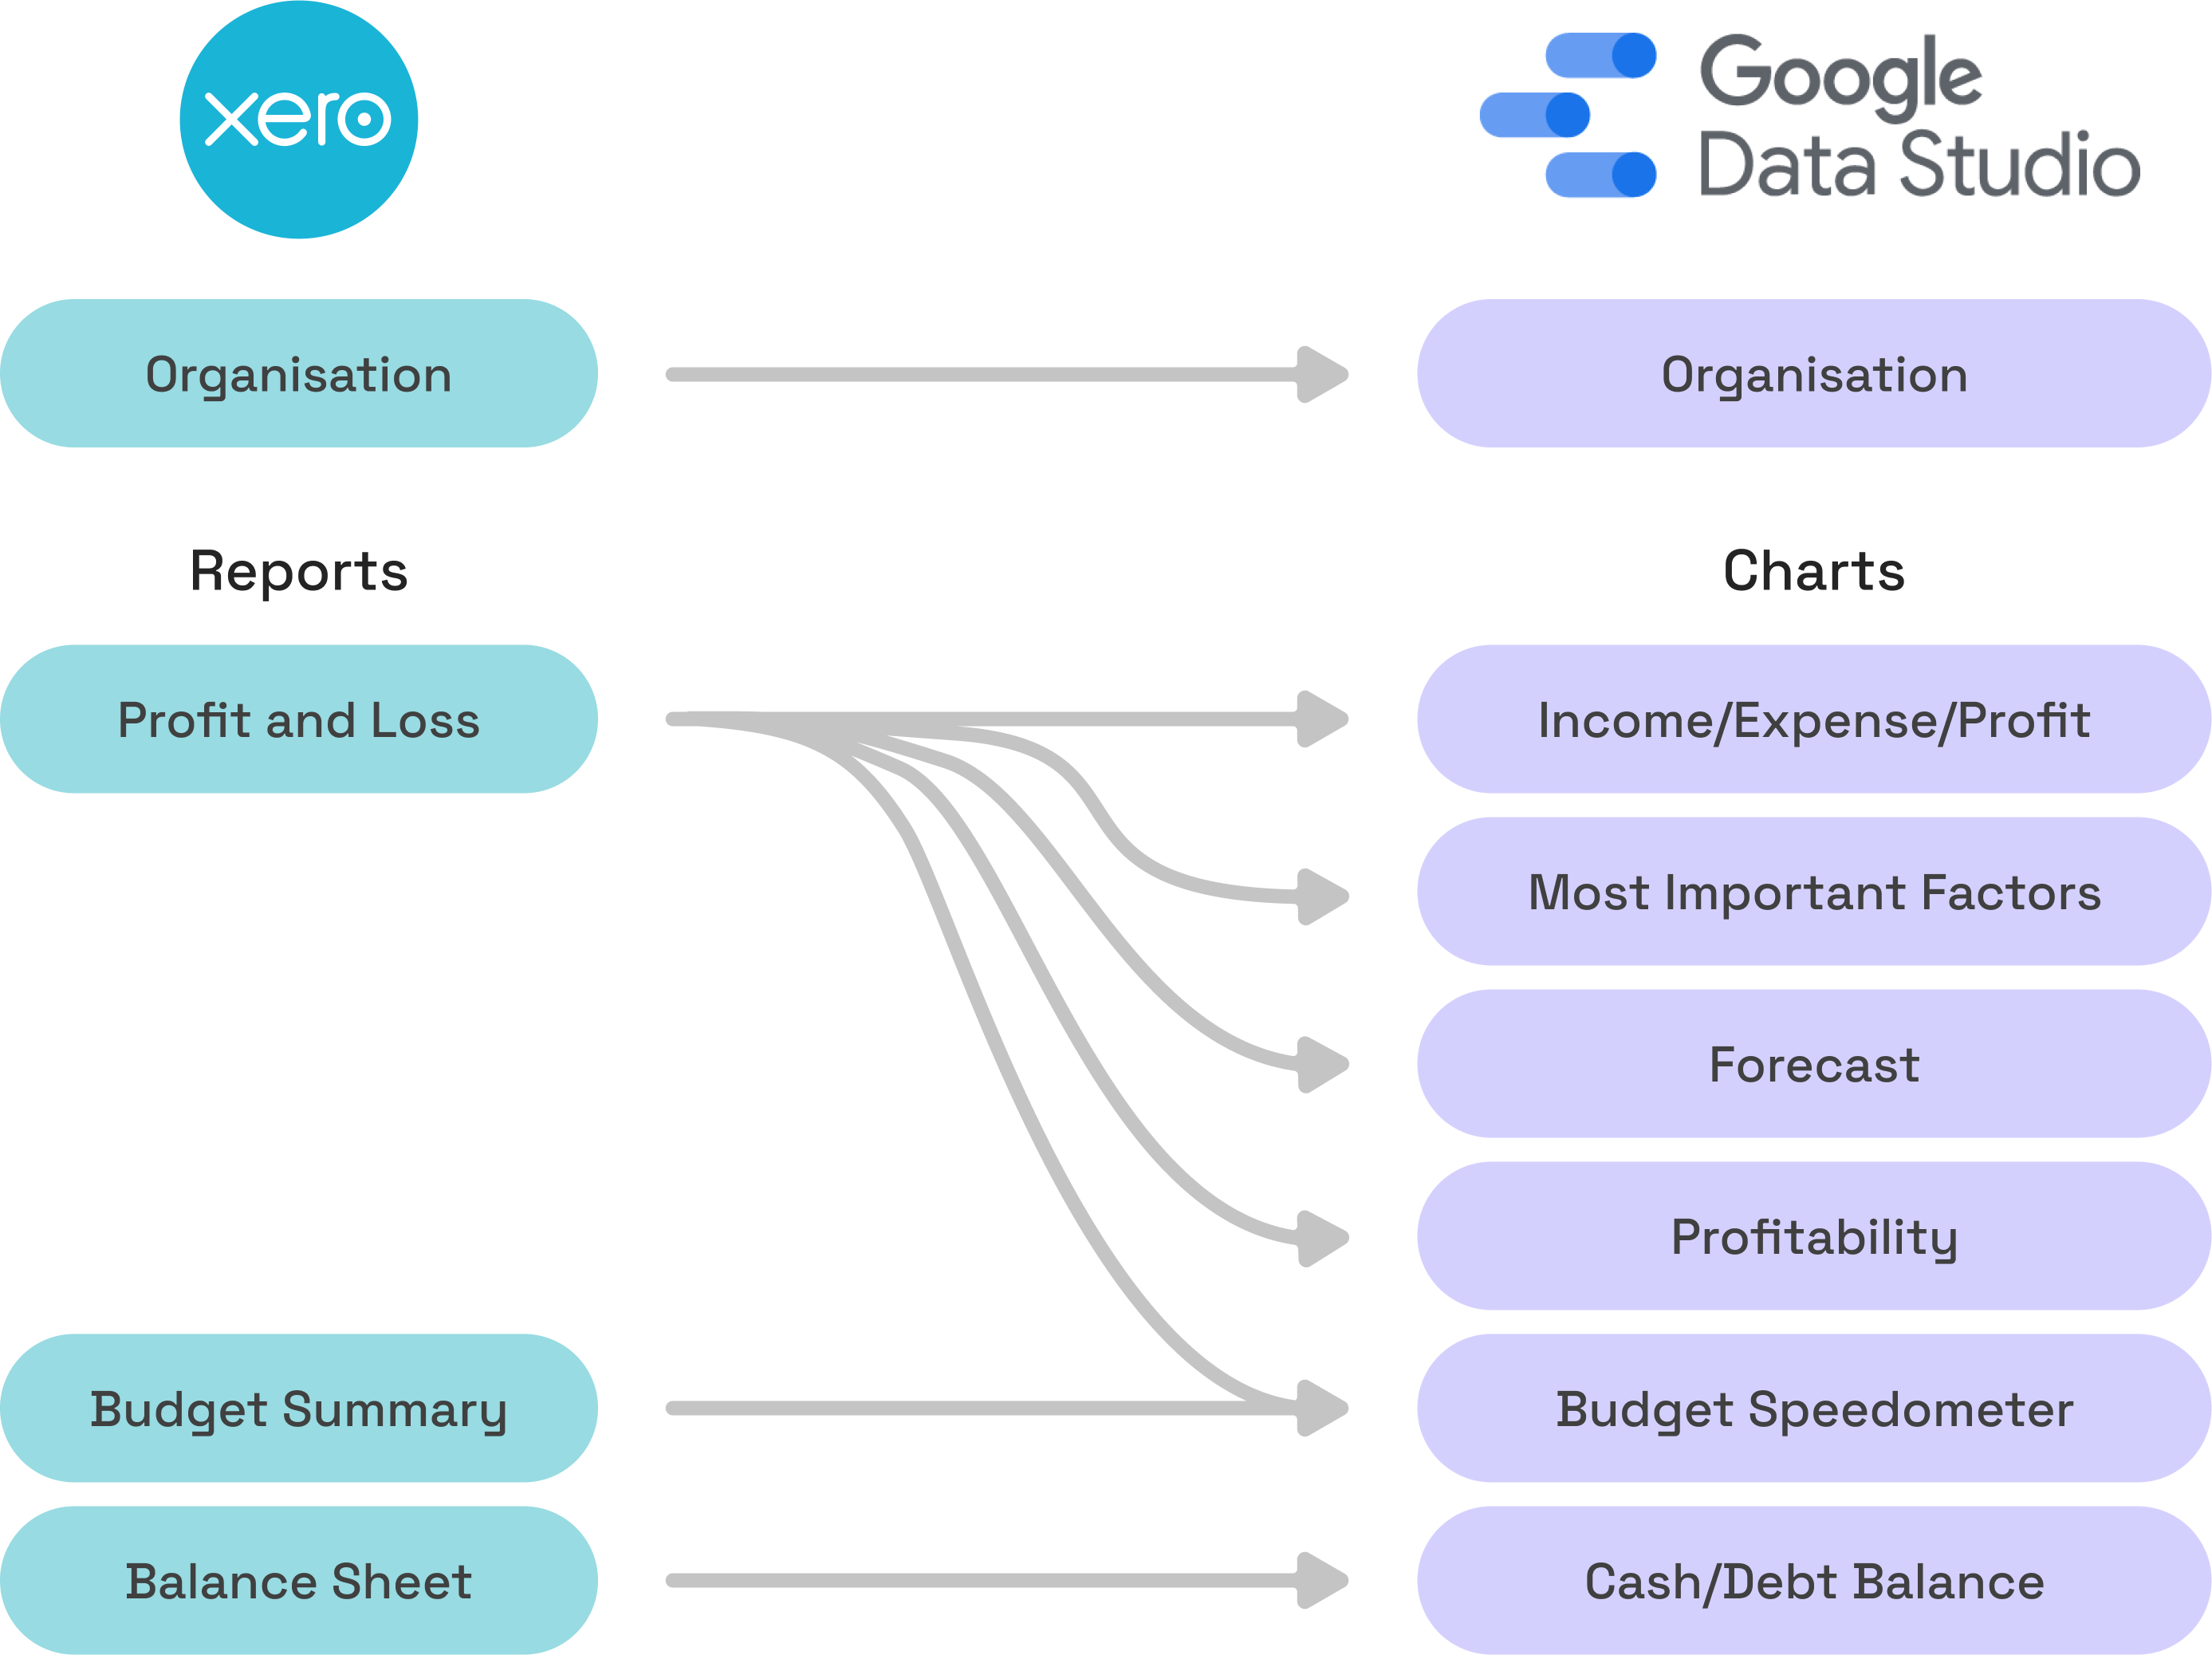 Data flow diagram from Xero to Google Data Studio